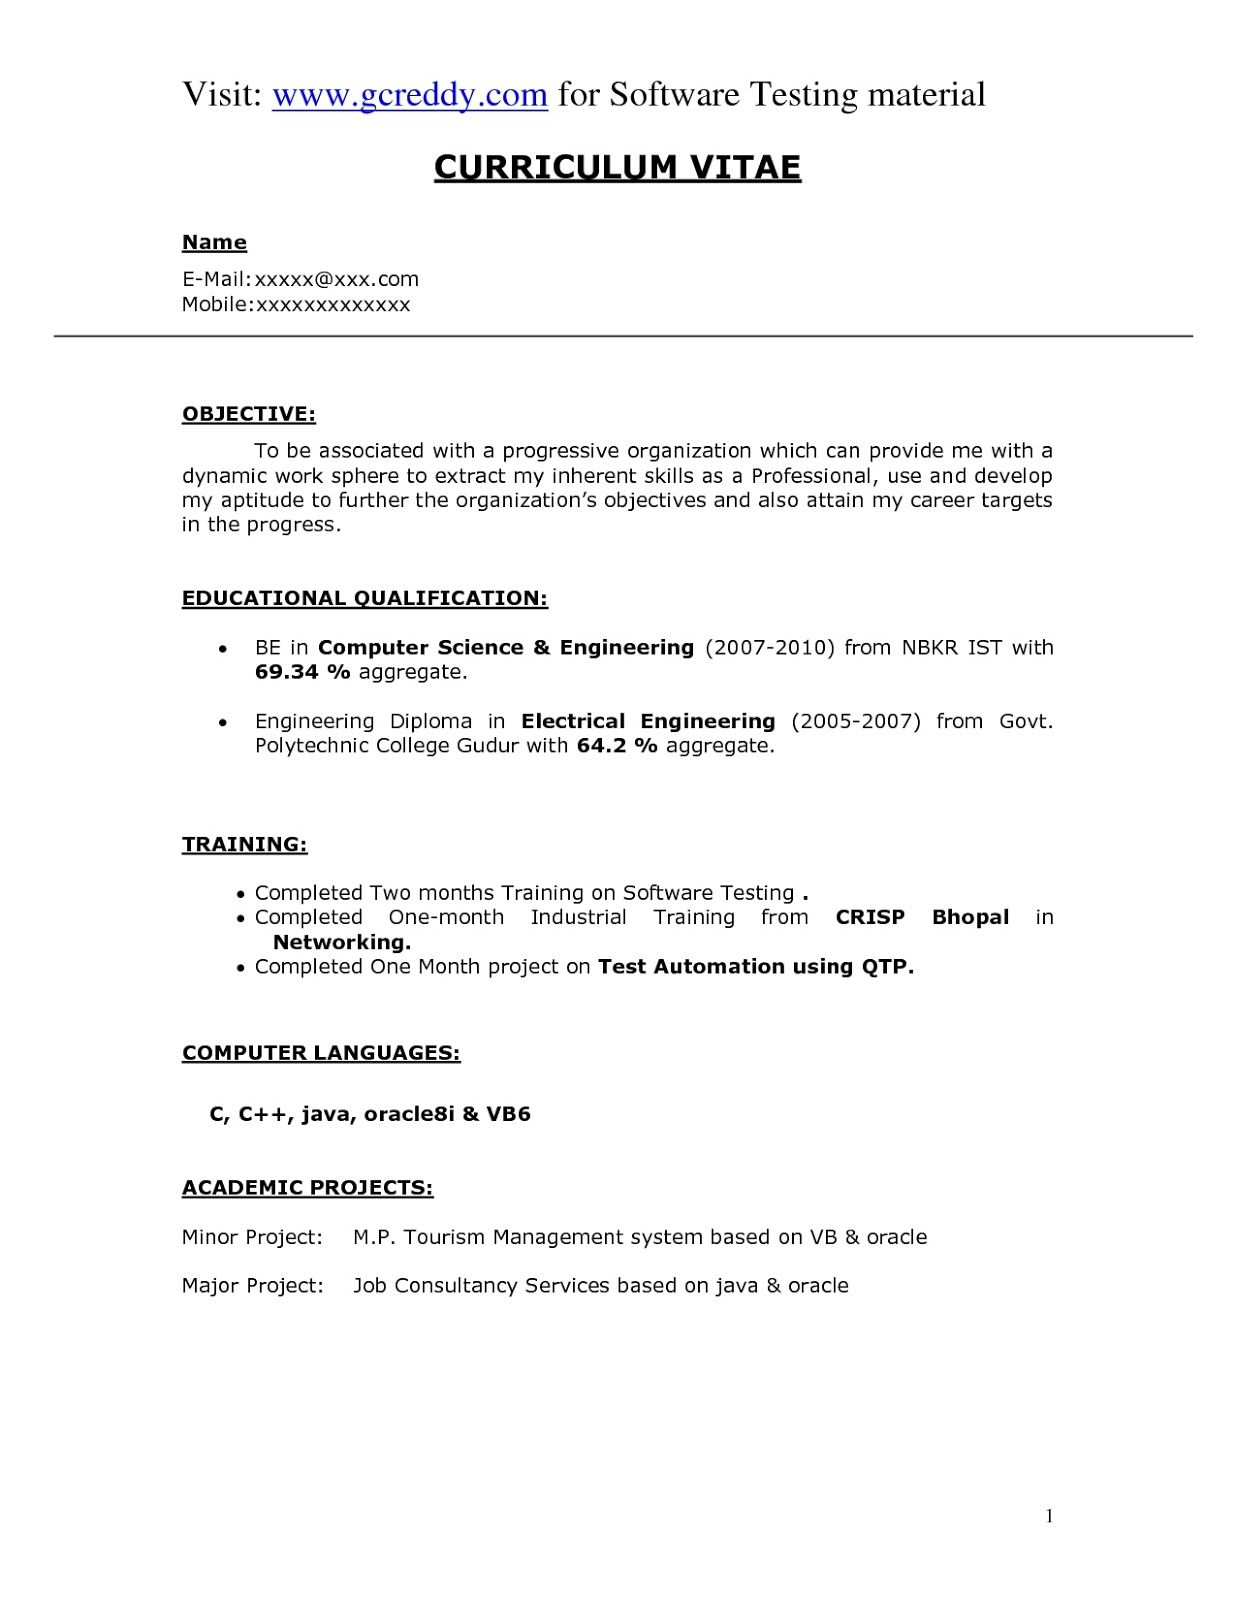 basketball player resume professional templates cover letter for engineering format Resume Professional Basketball Player Resume Examples